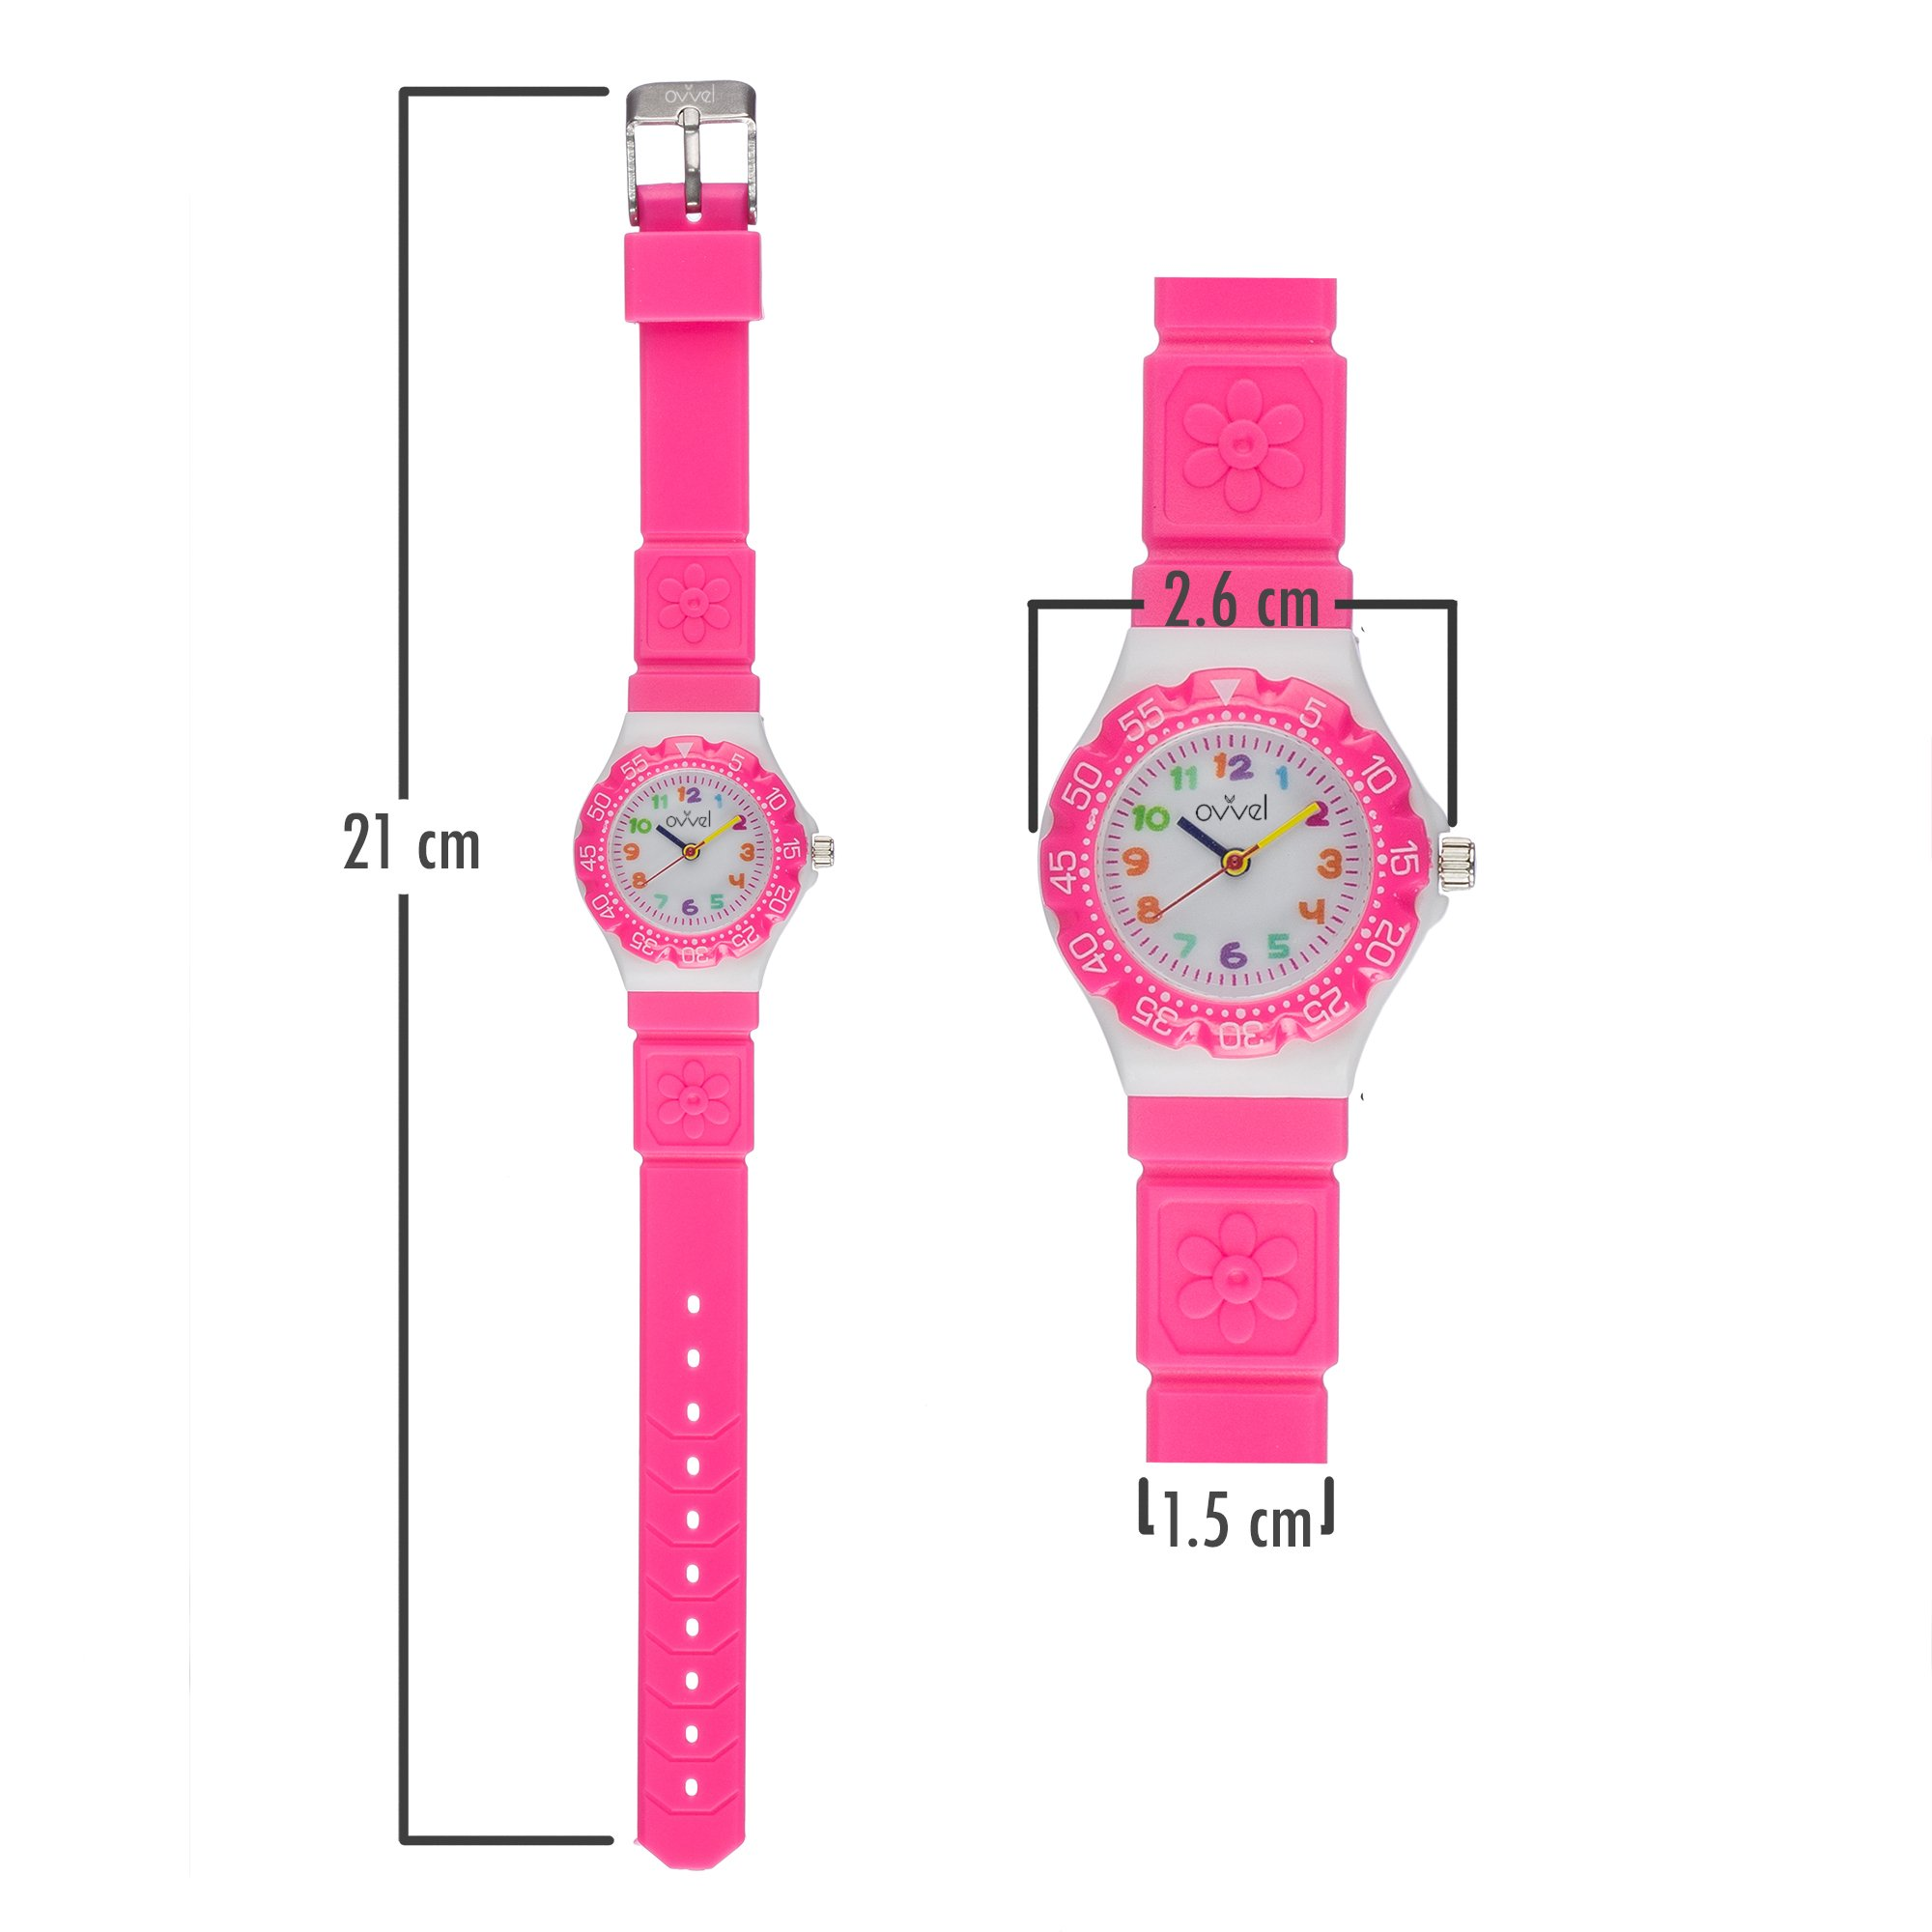 Ovvel Kids Watches, Wrist Watch for Little Girls, Beautiful & Adorable Time Teacher Watch, Innovative Easy–to–Read Design with Japanese Movement & Sony Battery, Gift for Little Girls - Pink by Ovvel (Image #4)